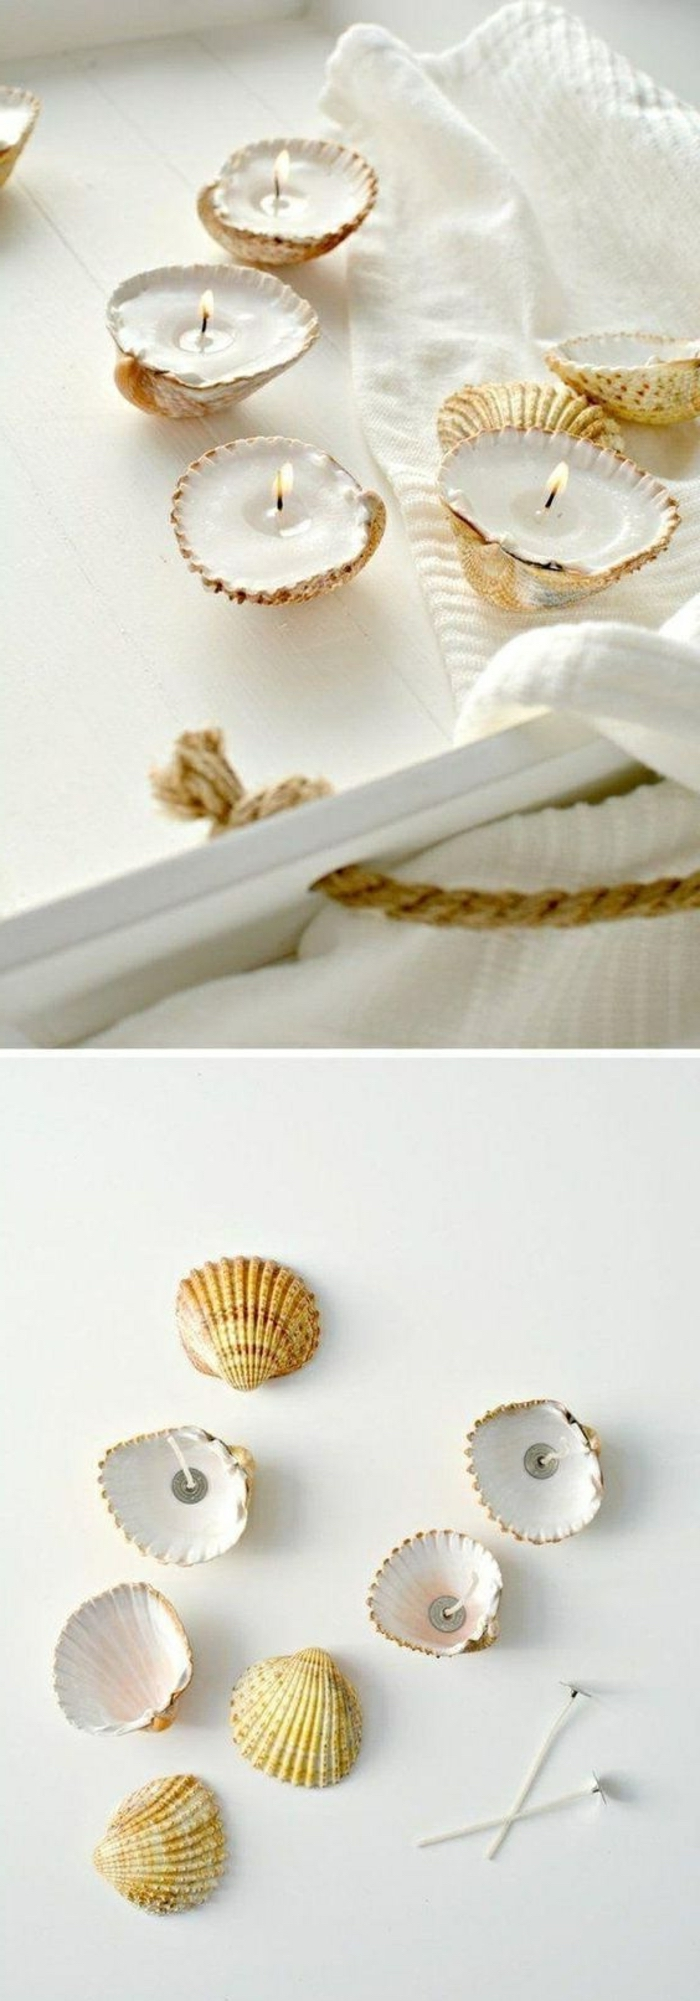 seashell candles, on a white tray, white towel, make your own candles